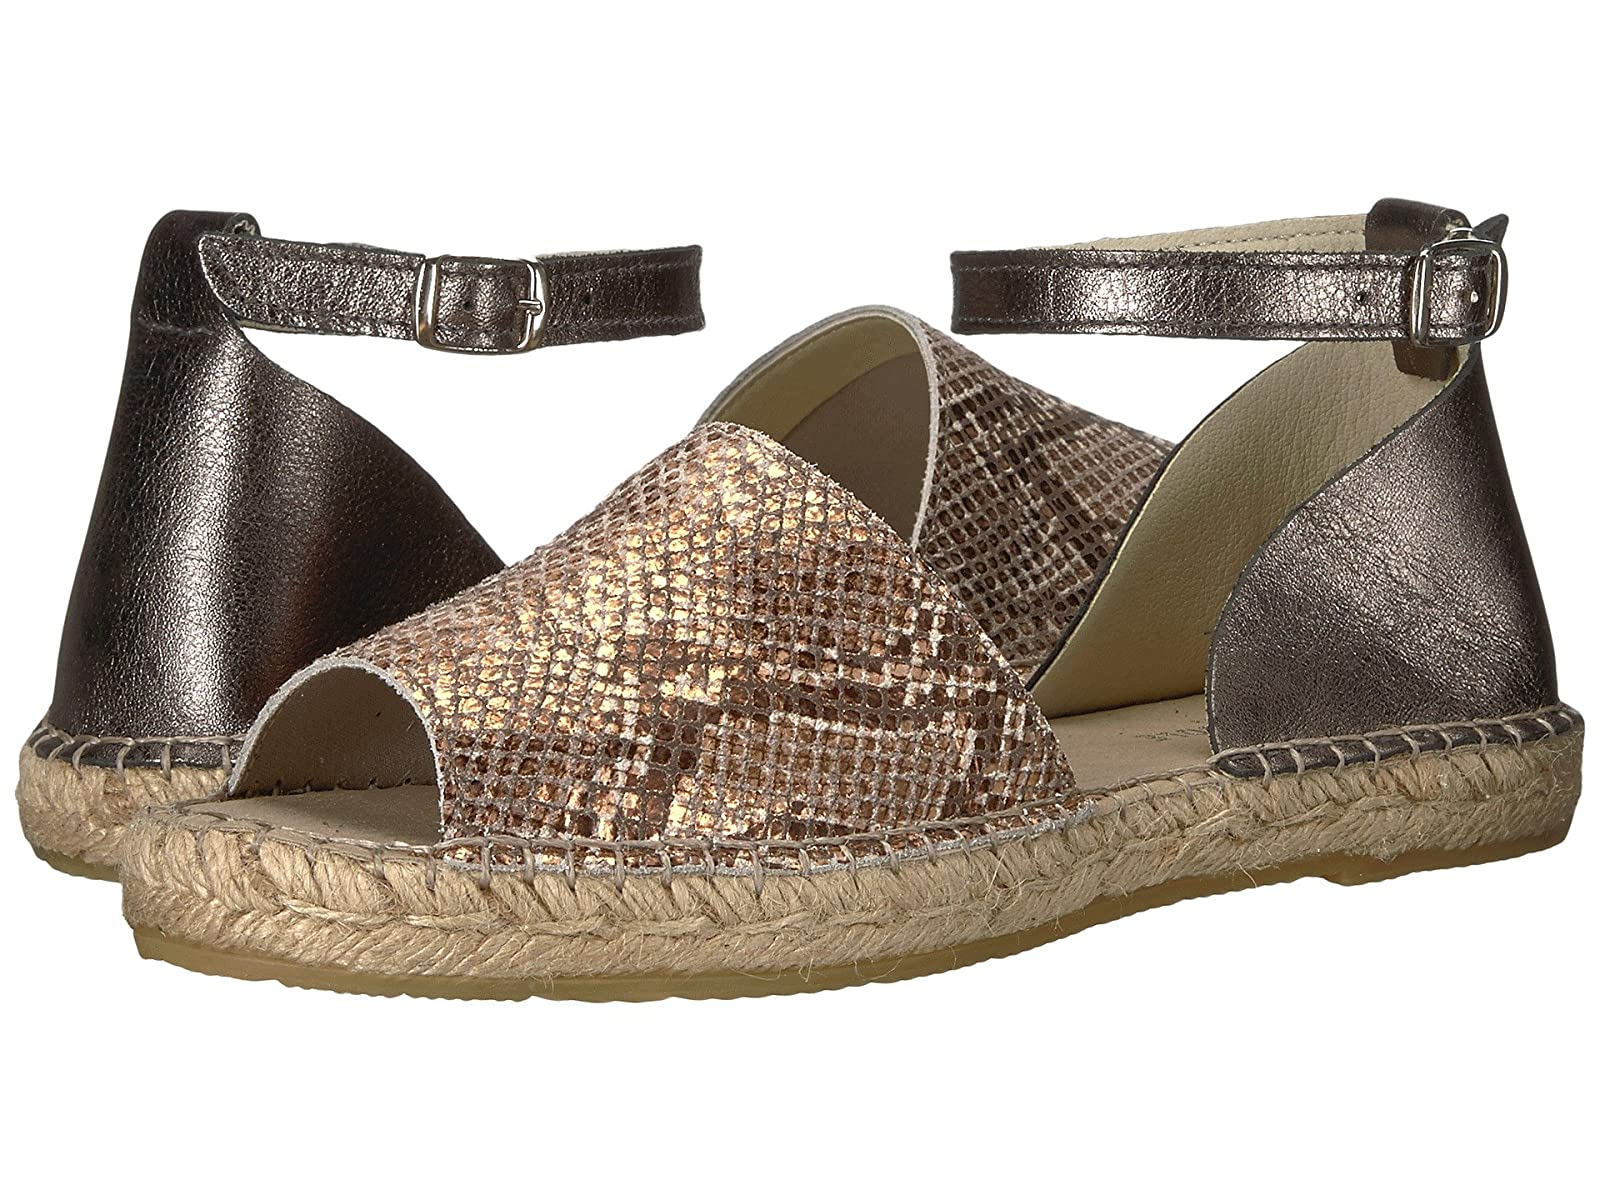 Kenneth Cole New York SammyCheap and distinctive eye-catching shoes